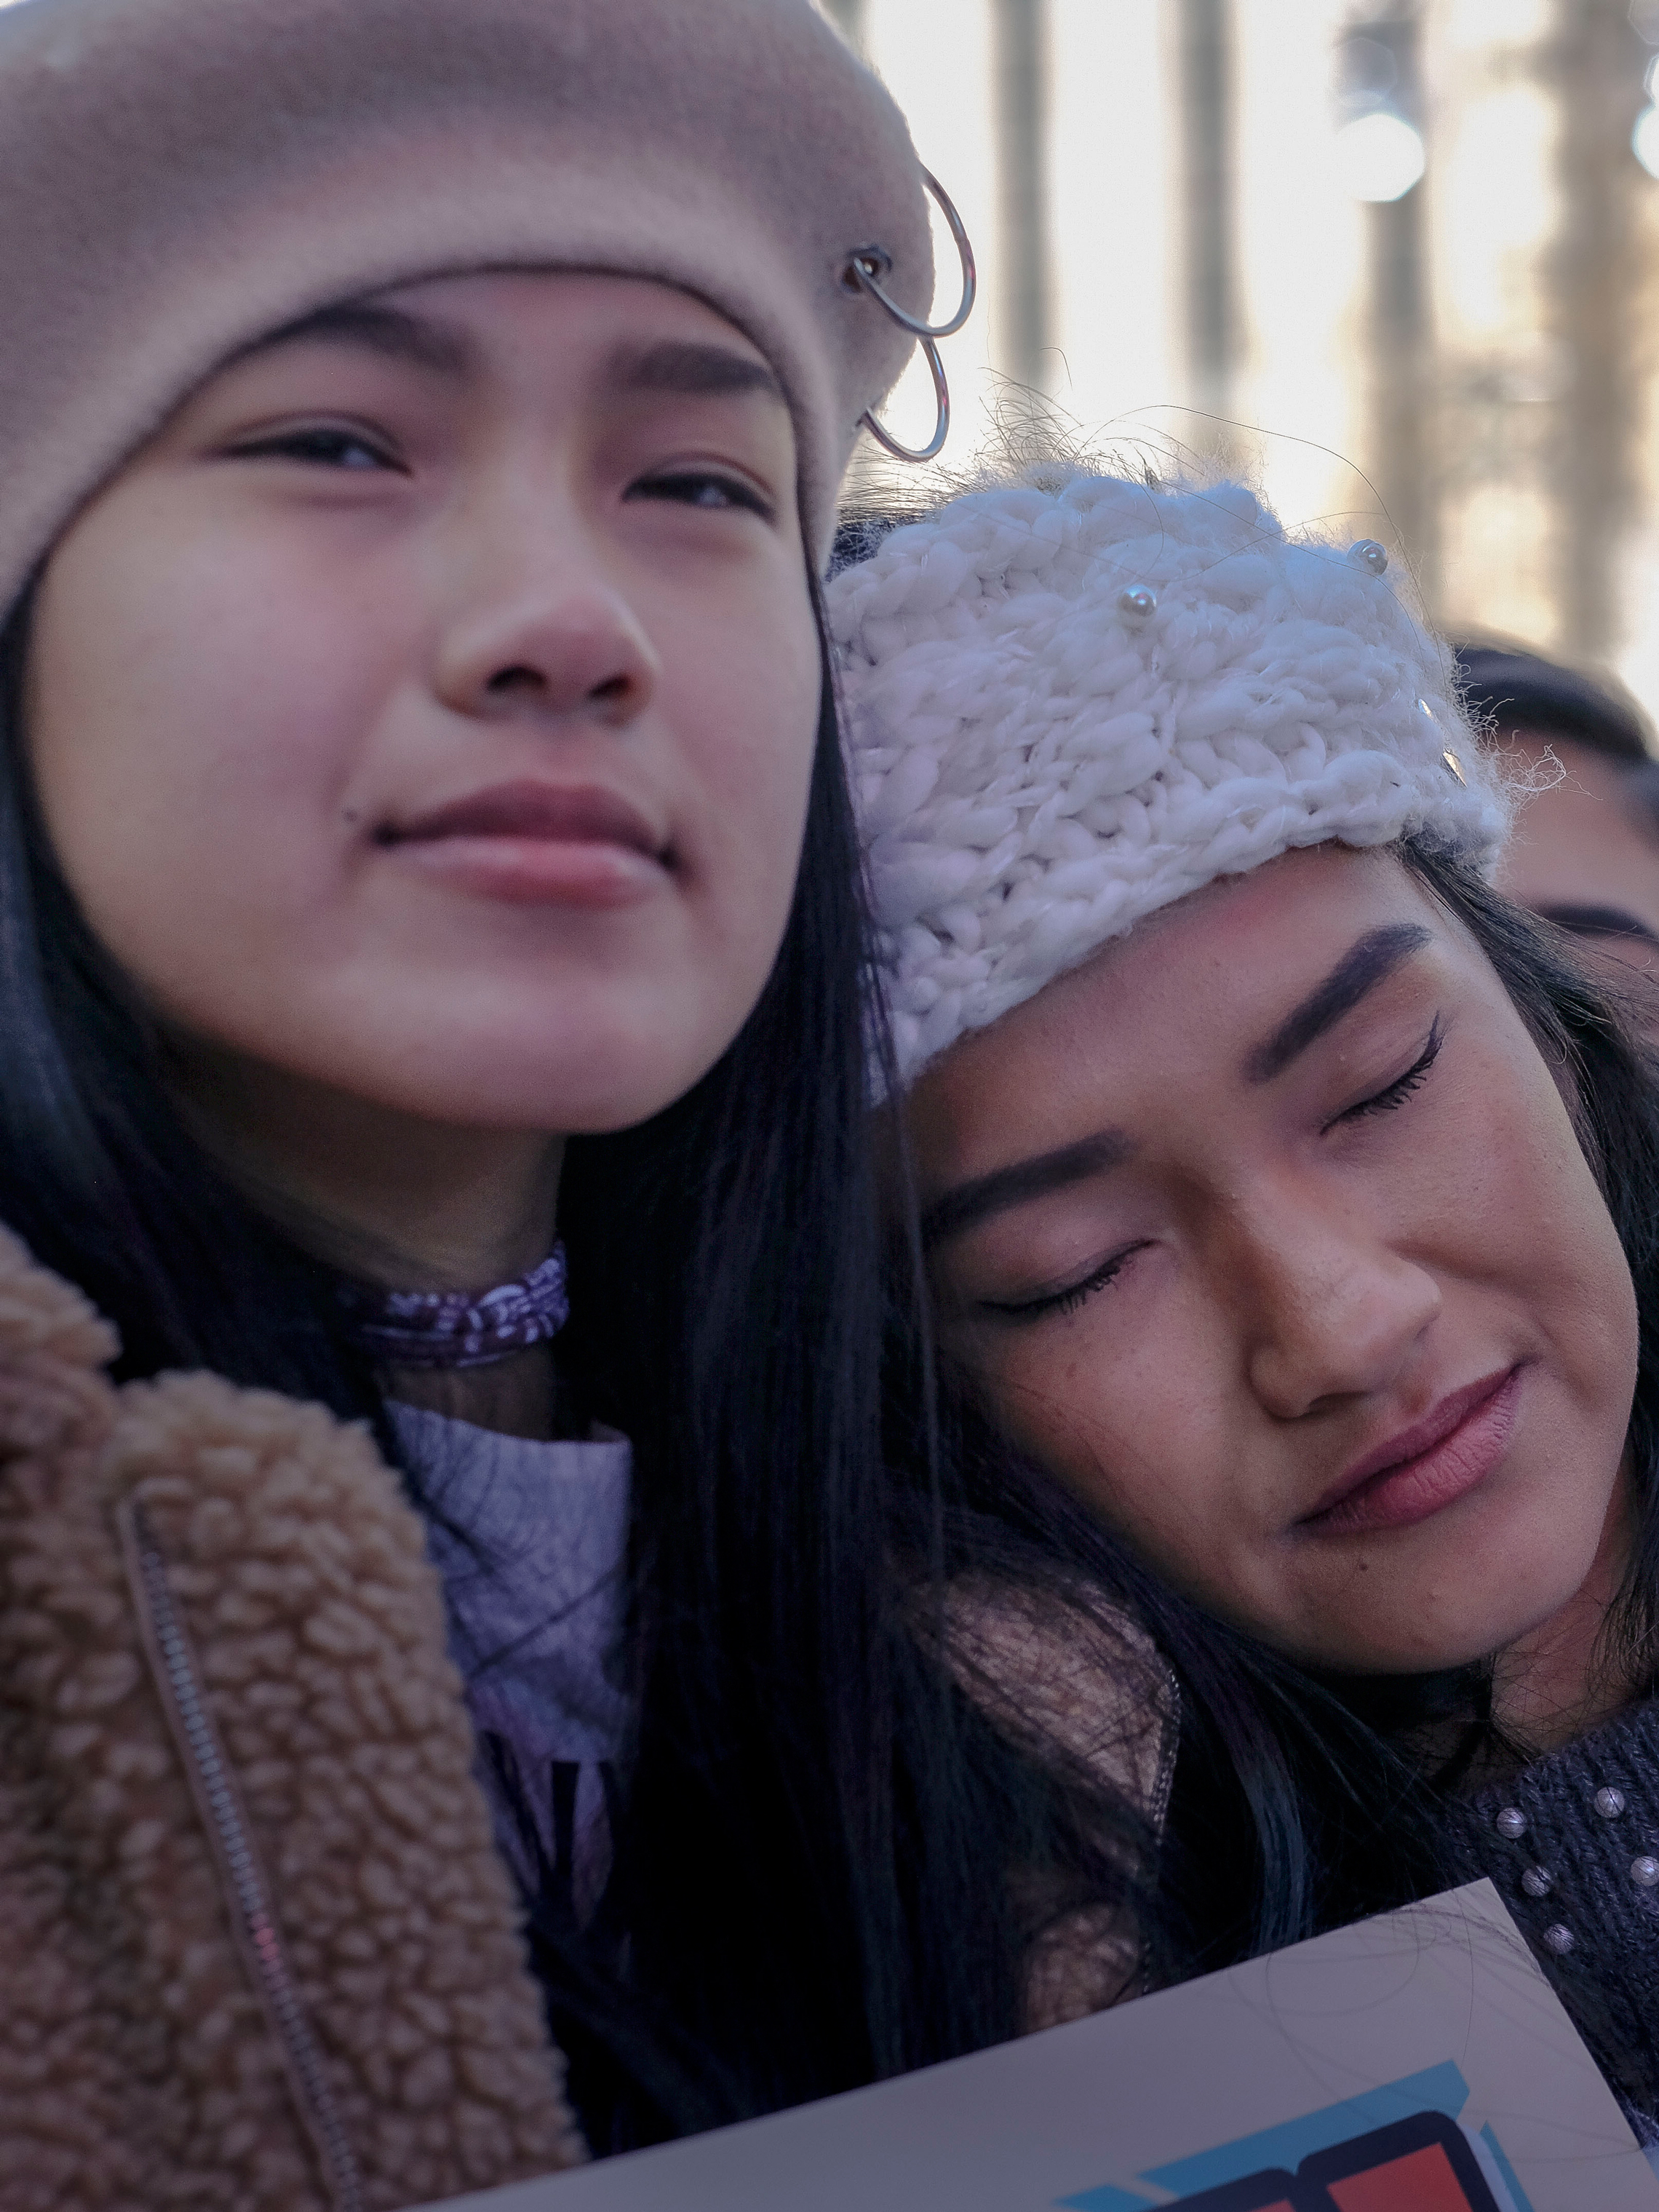 Sisters Chloe Trieu, 15, left, and Victoria Trieu, 19, both attended Marjory Stoneman Douglas High School.